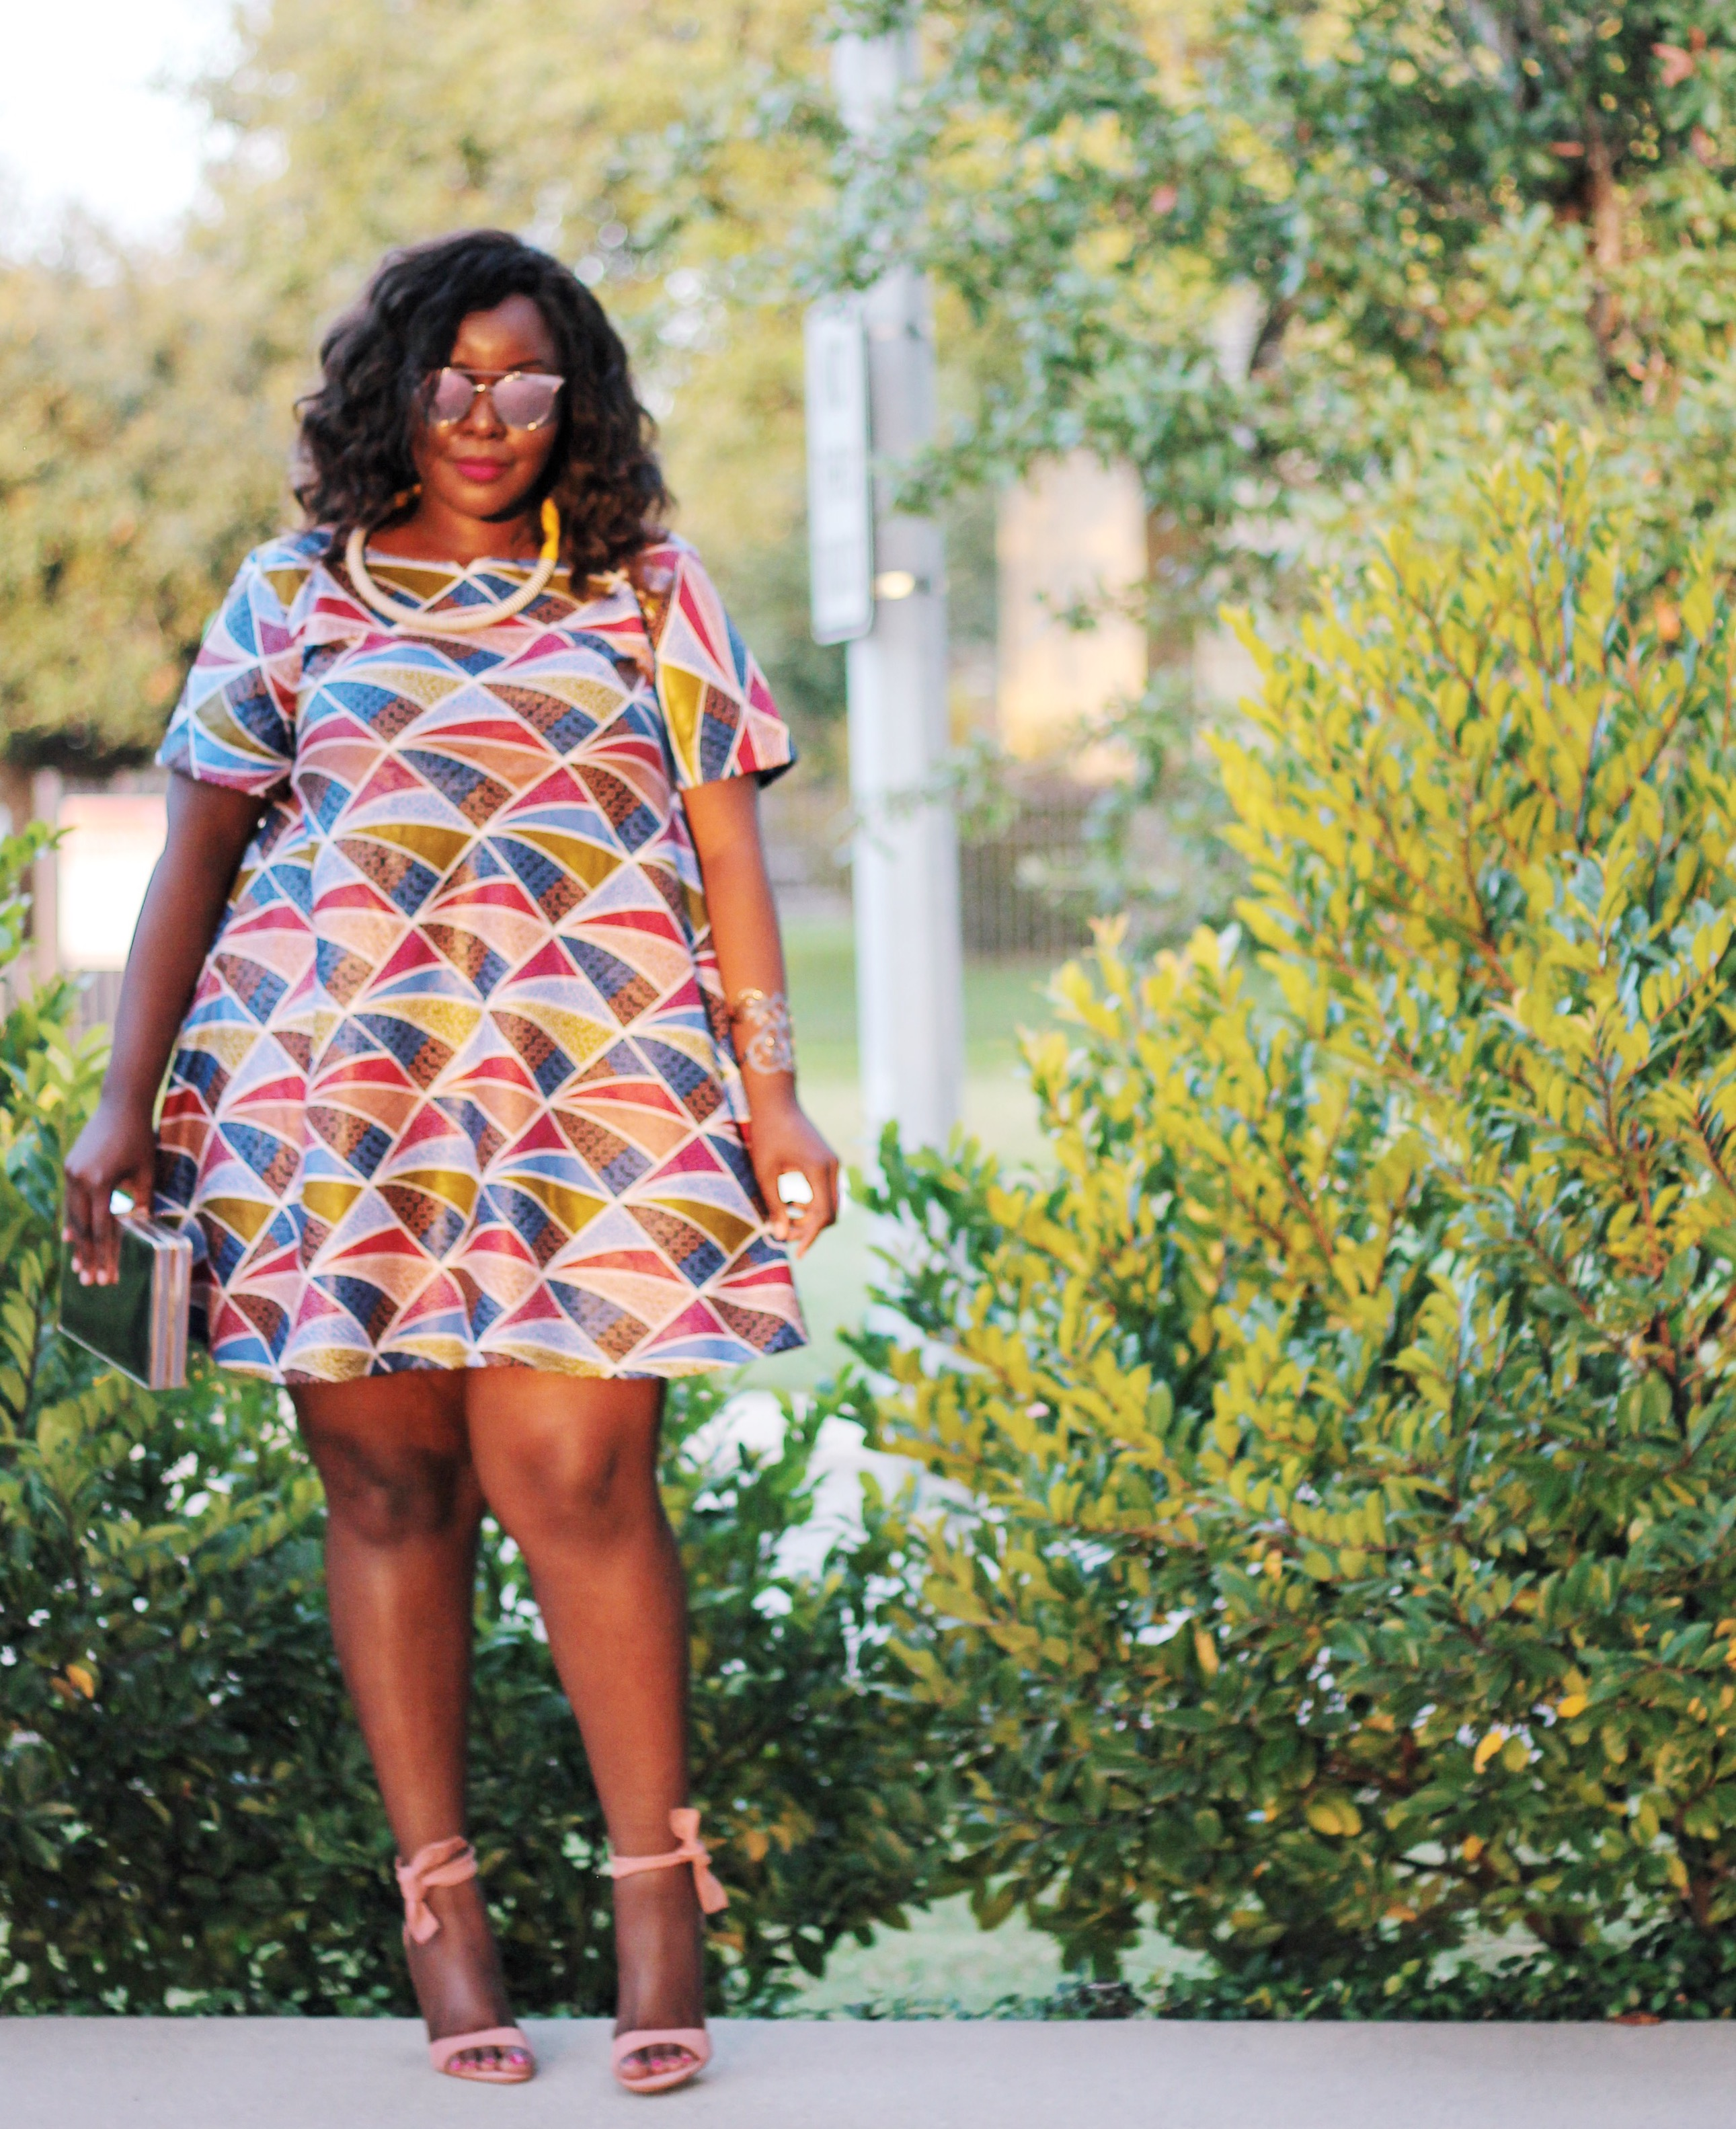 asos curve bloggers, beautiful curvy girls, curvy style dark skin fashion blogger curvy style blogger, dark skin beauty blogger, dark skin blogger, houston blogger, inspiration for 2016, inspiring bloggers and blogs, new years resolutions, plus size blogger, quotes for 2016, relationship advice blogs, rules to live by in the new year, texas blogger, travel blogger, ugandan blogger, ugandan fashionista, ugandan style blogger, african print ankara skirt styles, where to get african print clothes in America and uk, exposure african crafts in kampala uganda, kyaligonza kampala african material, Steve Madden Bowwtye Heel Sandal